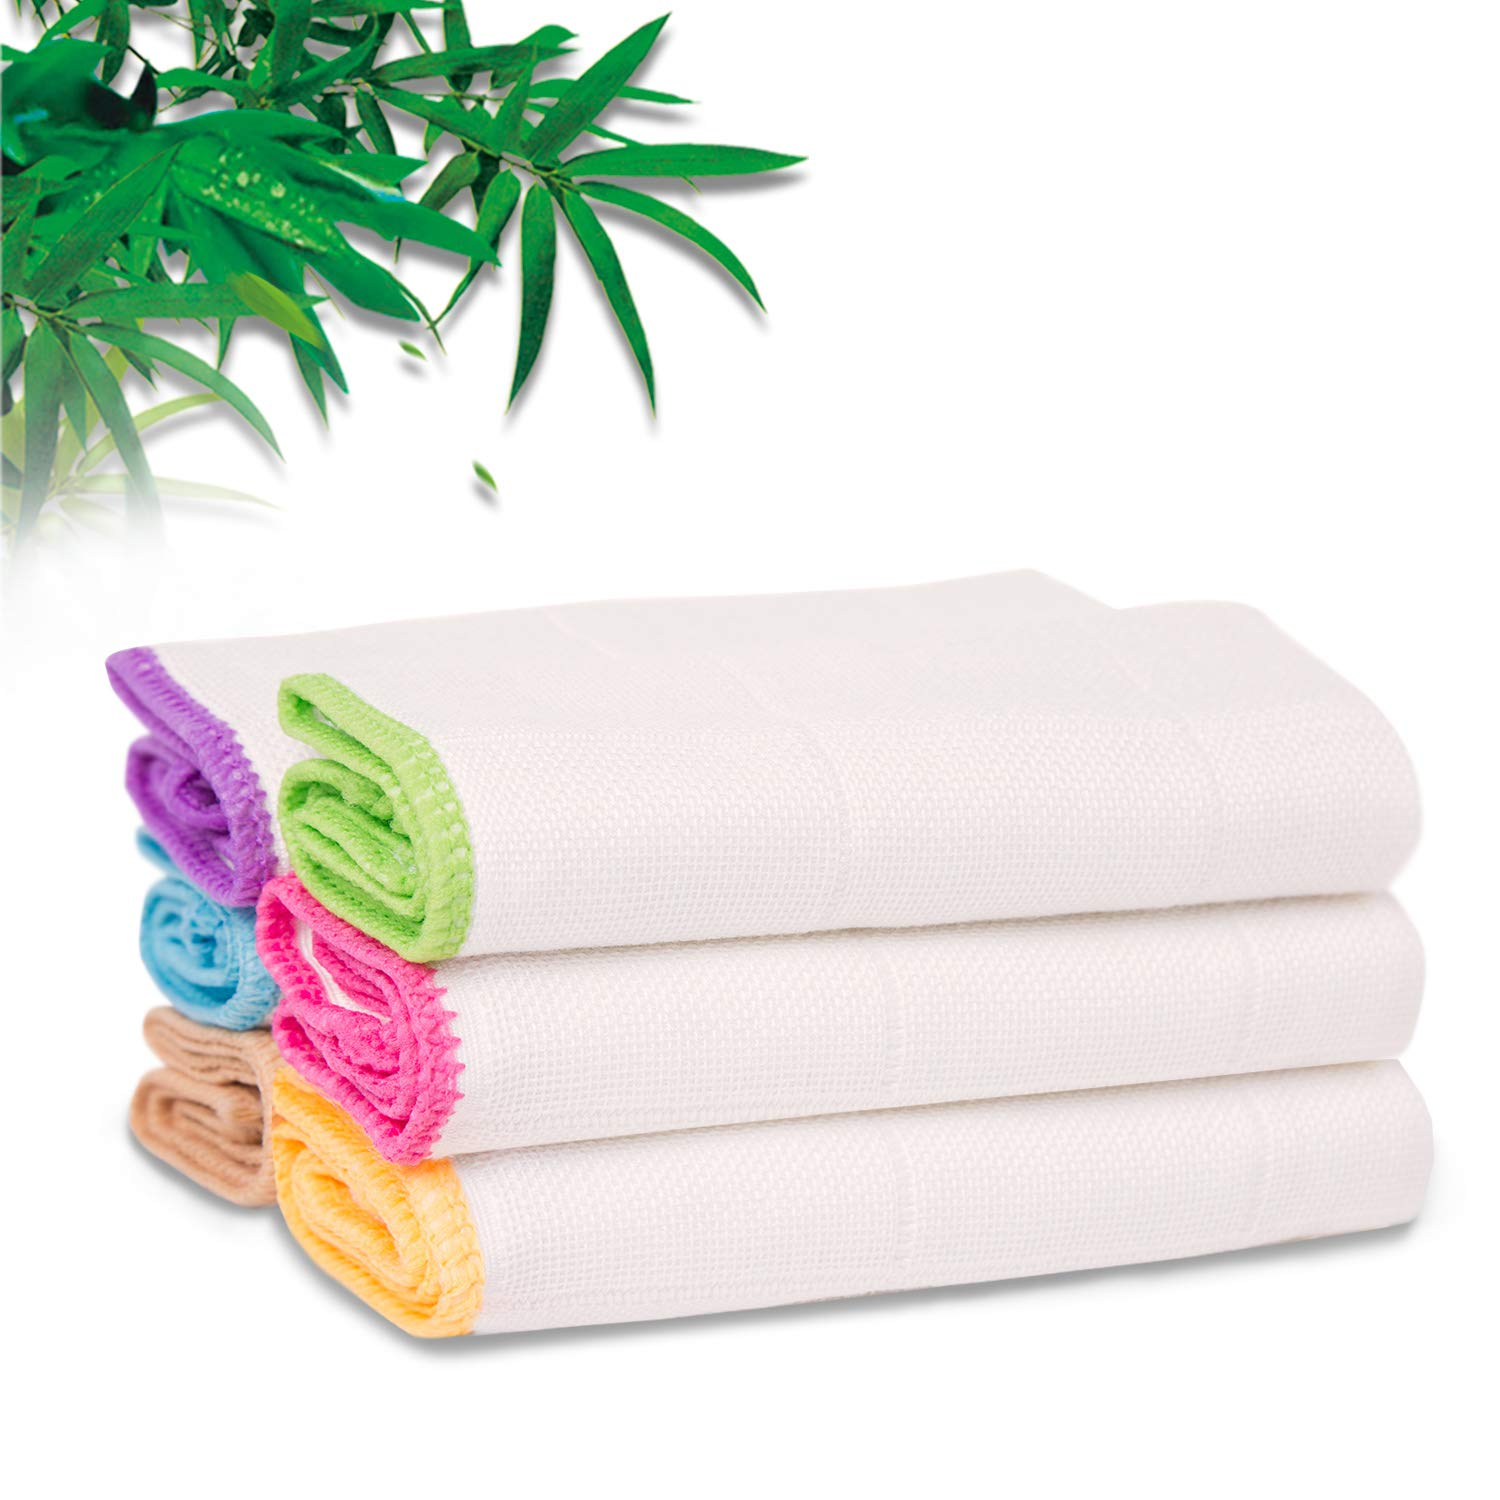 TOHAO Dish Towels, Kitchen Dishcloths 6-Pack Cleaning Cloths (11.8 x 11.8 Inch) 100% Bamboo Fiber, Ultra Absorbent & Fast Drying, Strongly Removes Oil and Dirt